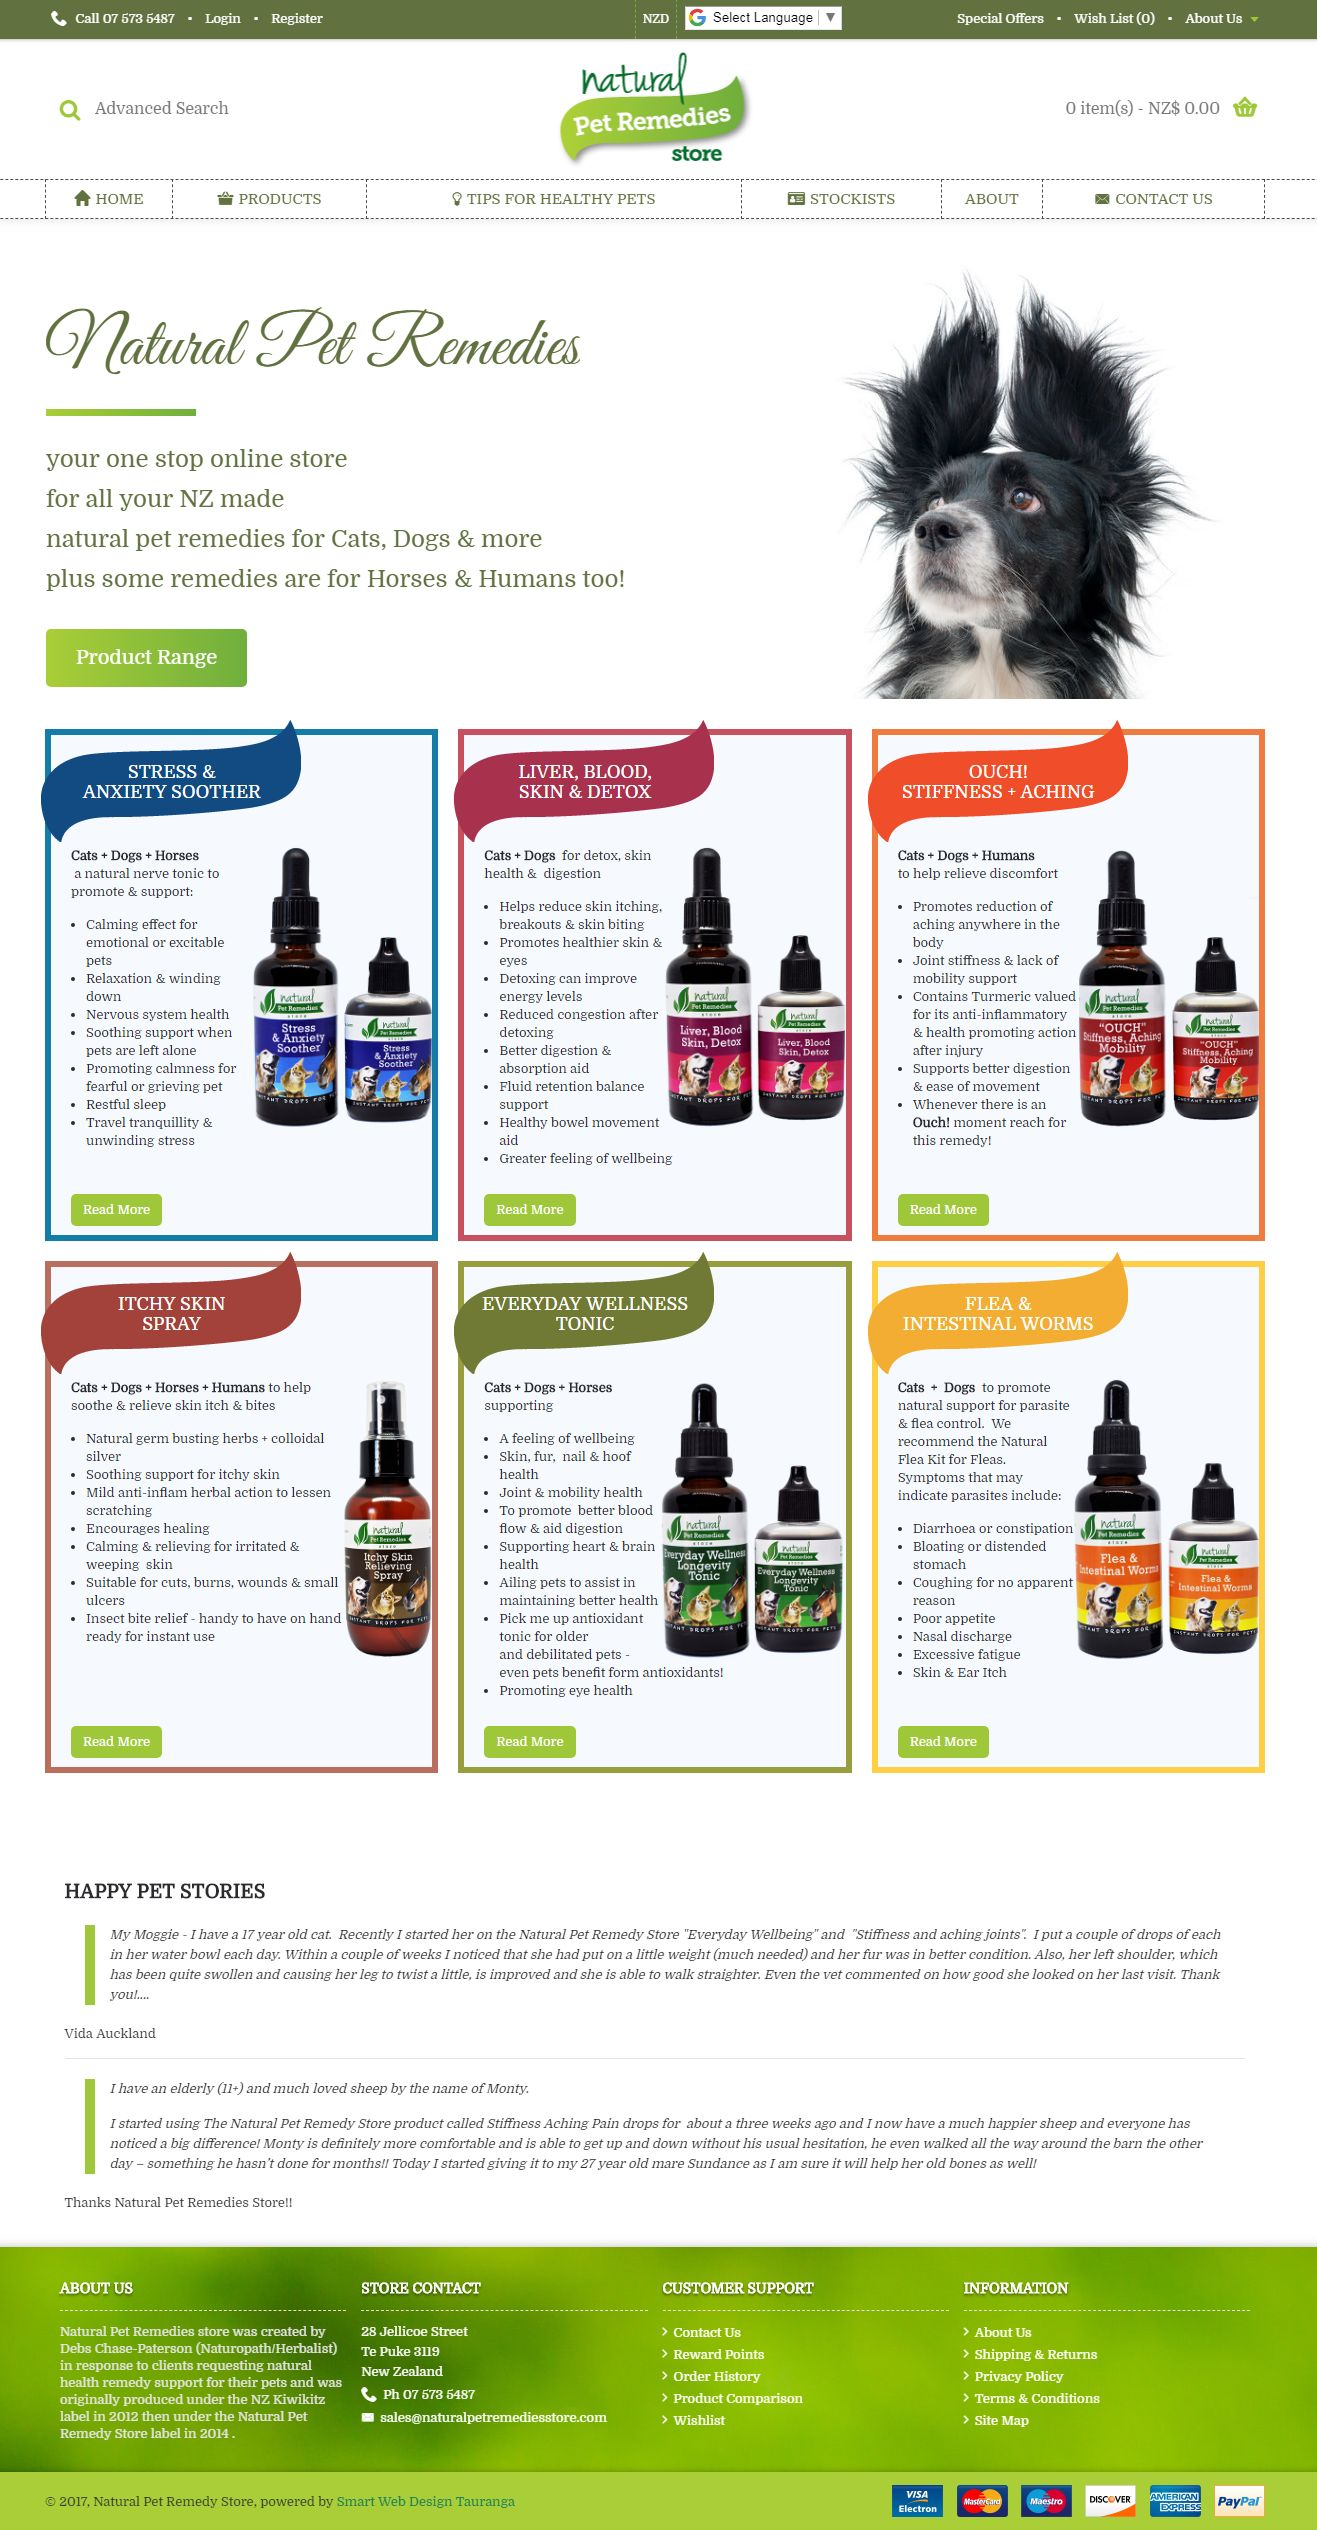 Natural Pet Remedies Store